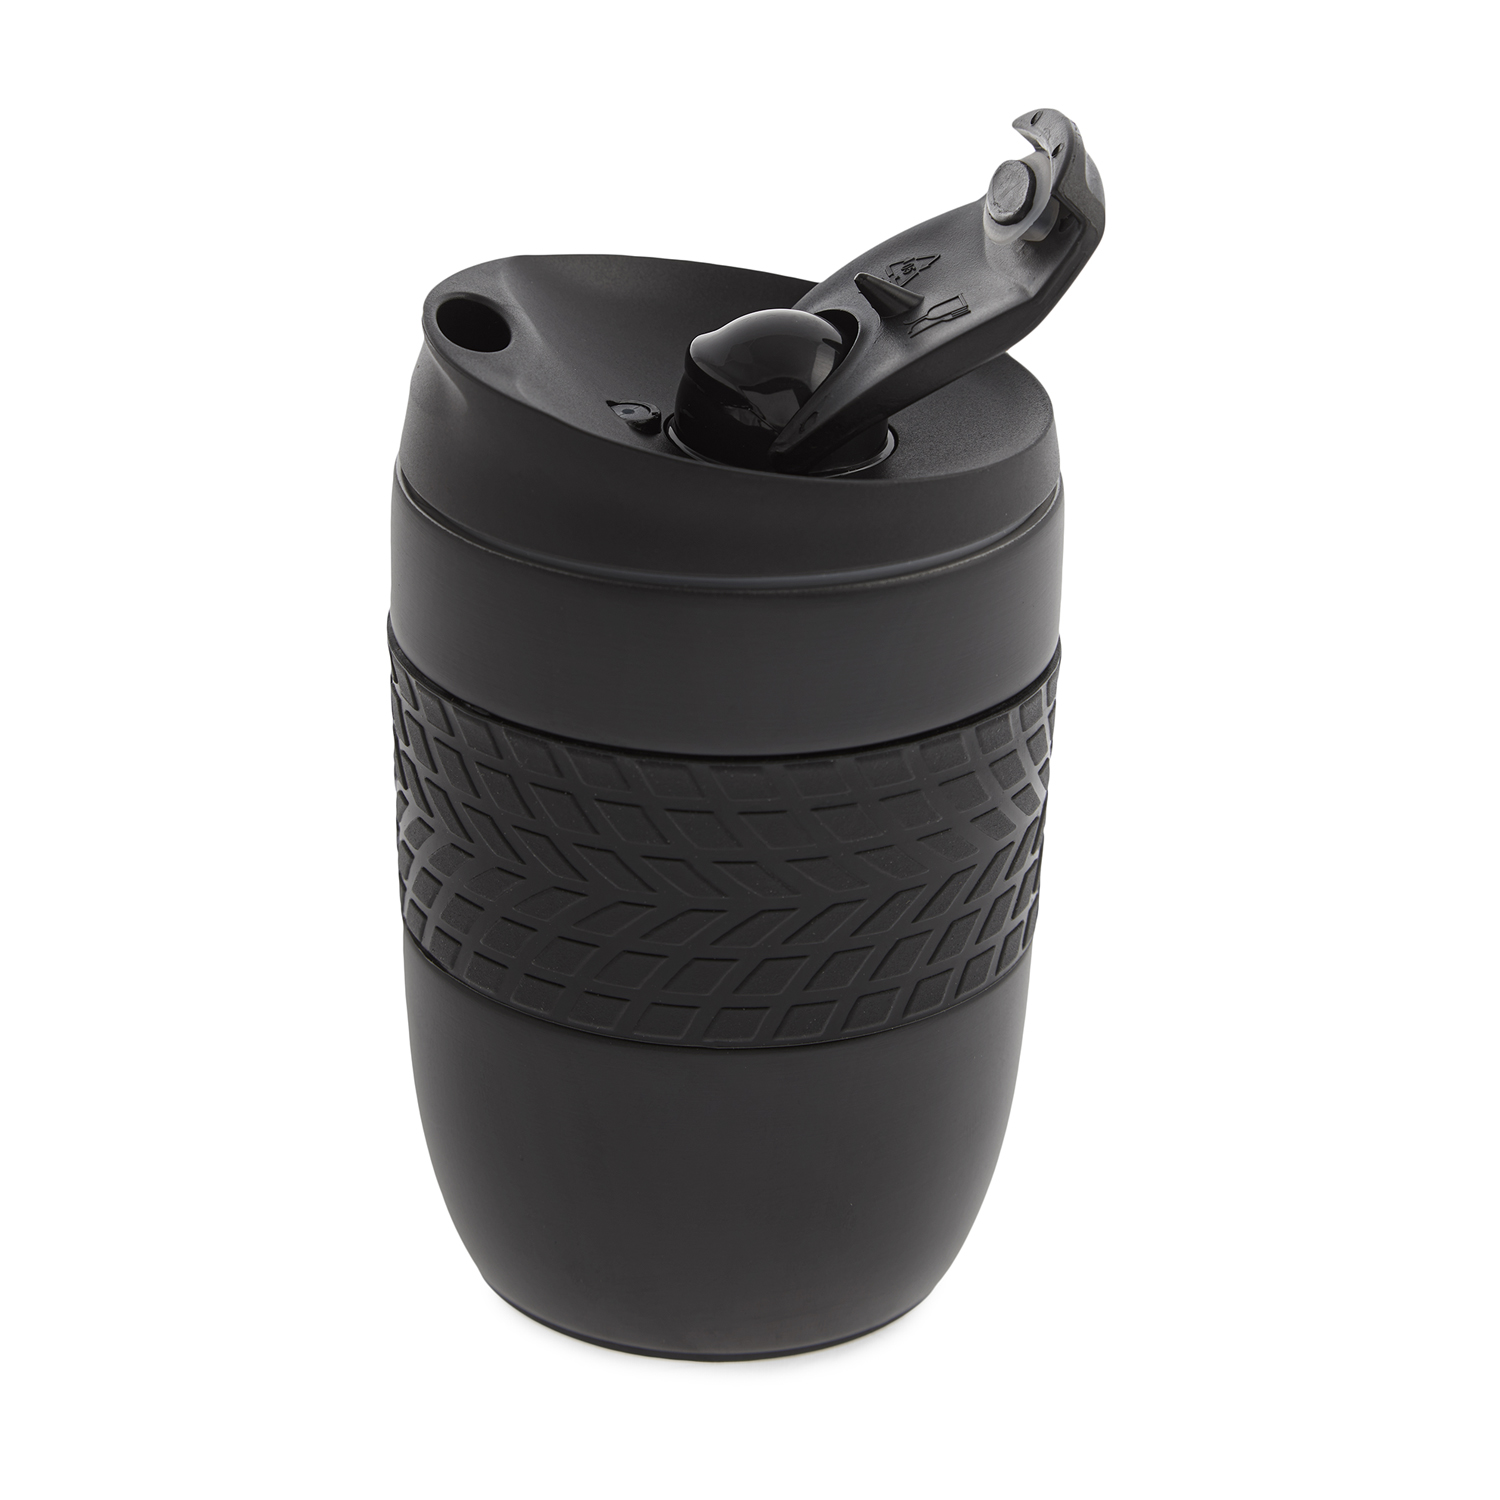 Body Go Stainless Steel Travel Mug 260ml Black Home Store More